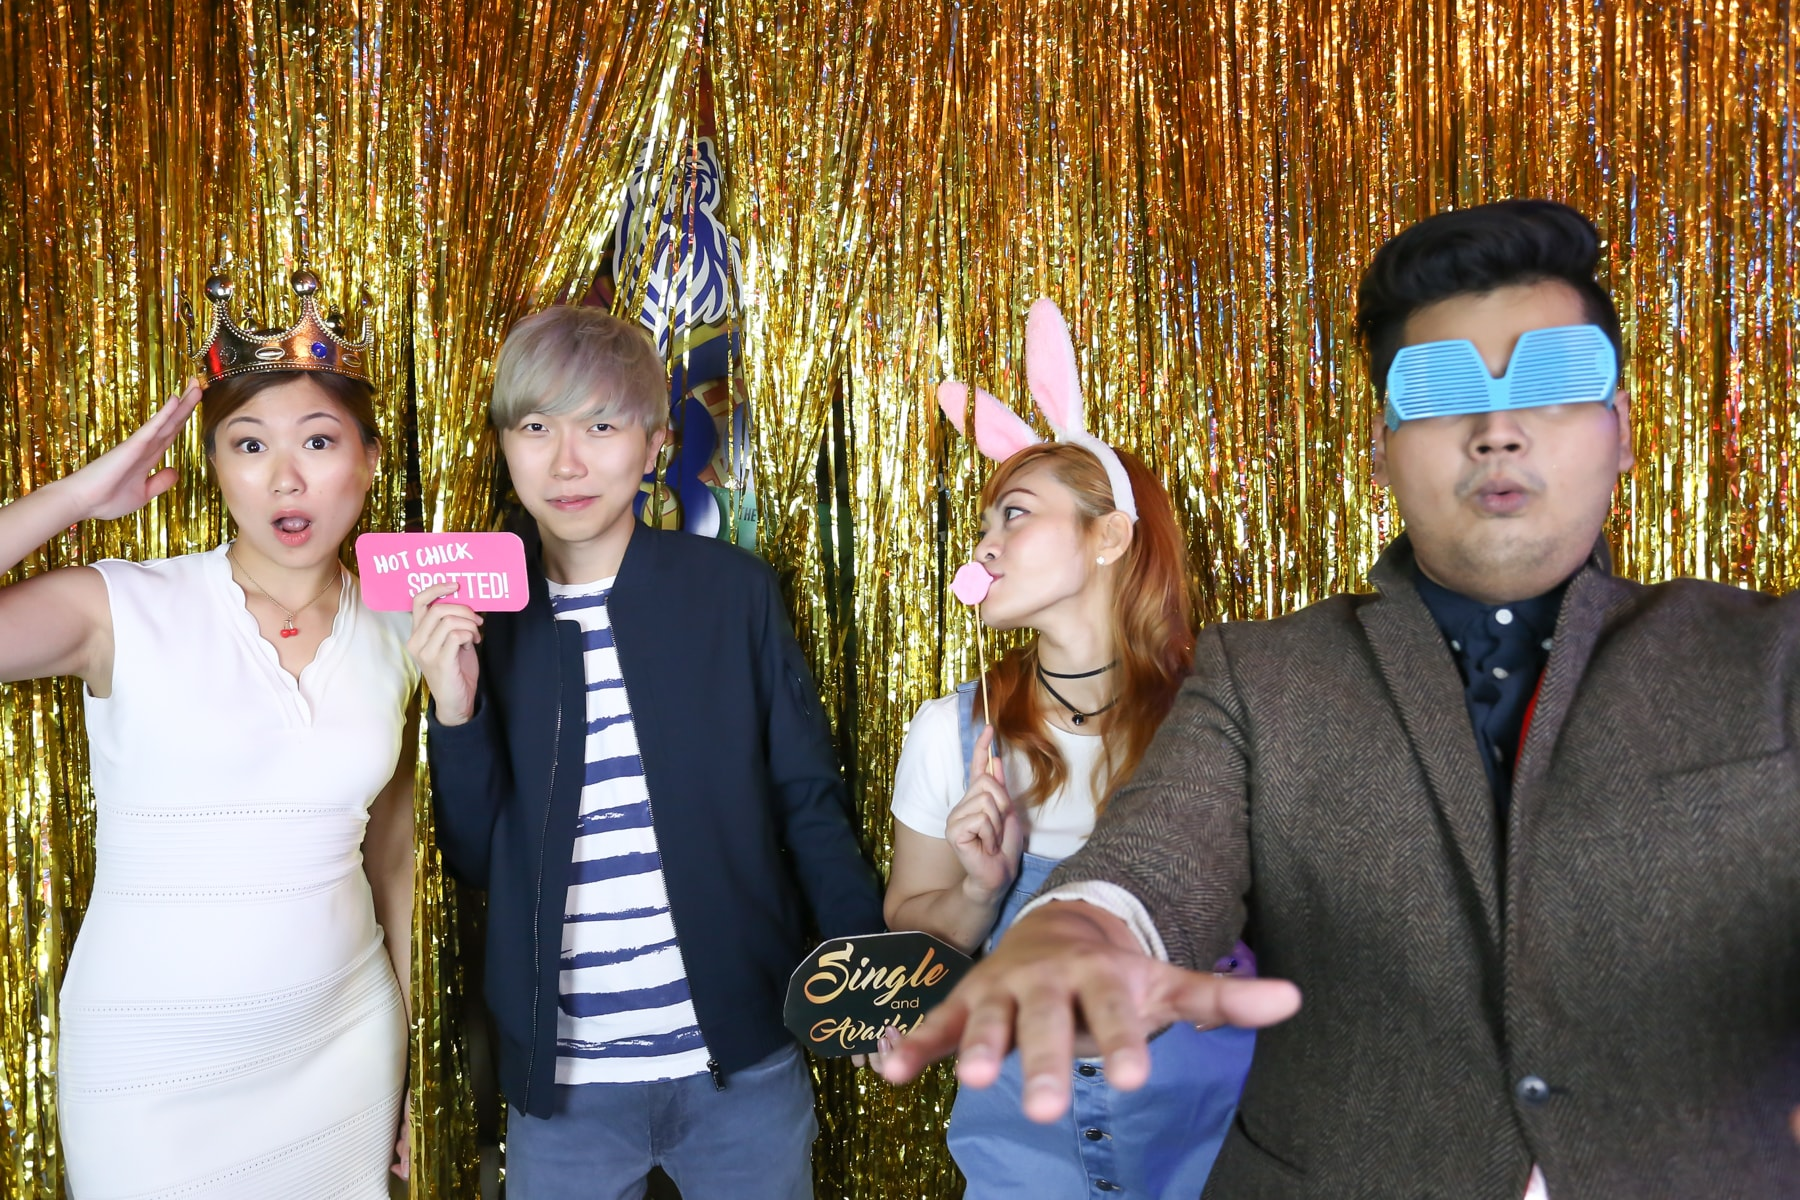 Sushivid+crunch+tagbooth+15